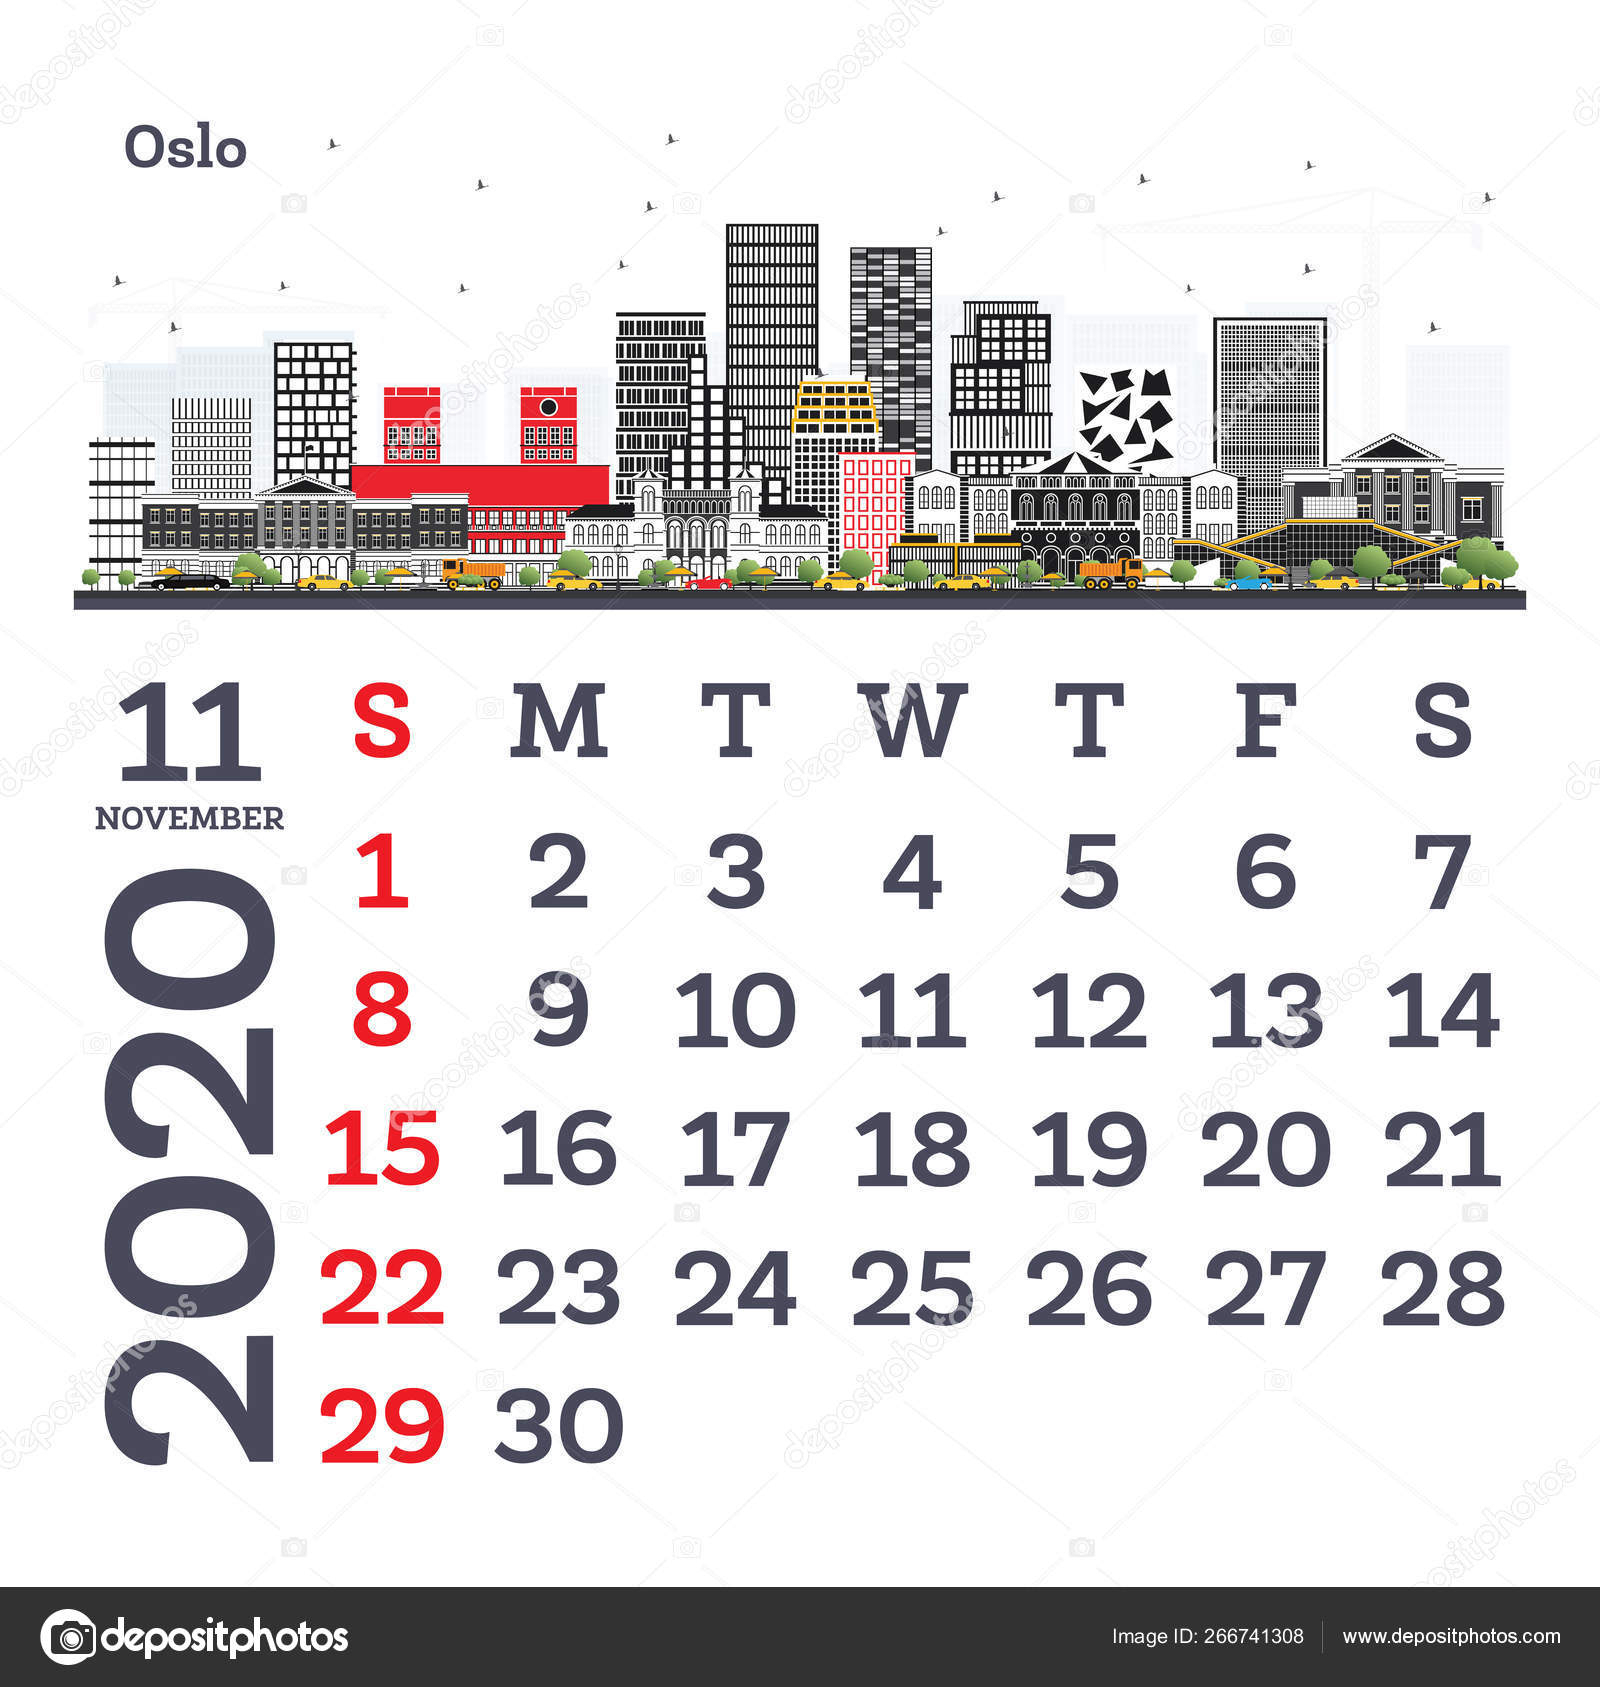 November 2020 Calendar Template With Oslo City Skyline. — Векторное